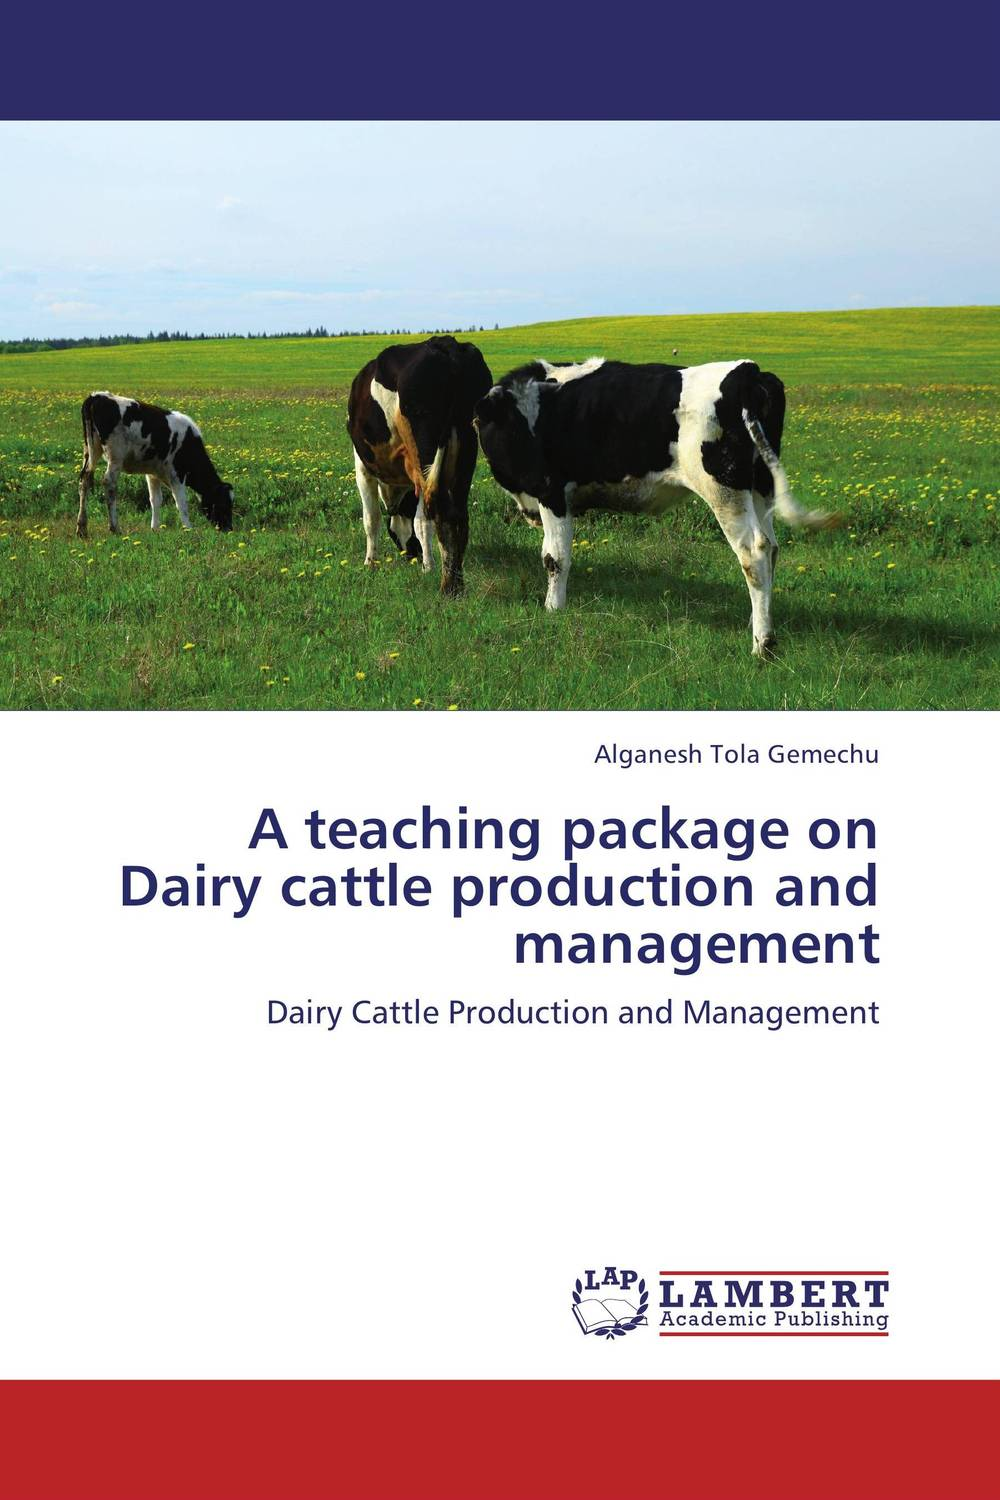 A teaching package on Dairy cattle production and management therapeutic management of infertility in cattle